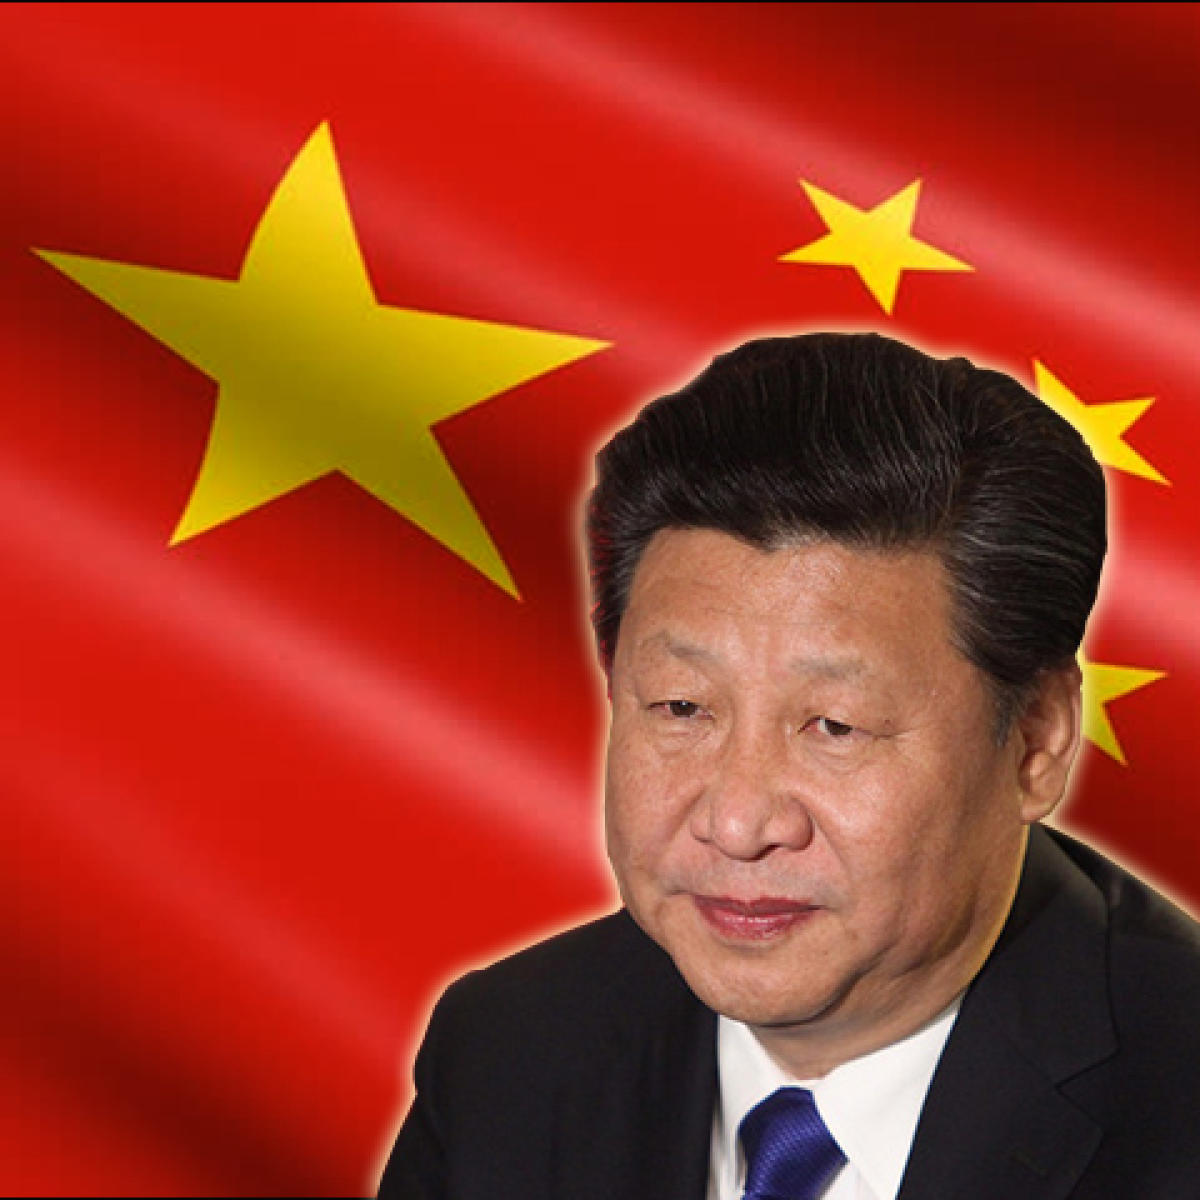 Long march: Xi unveils China's Great Power ambition